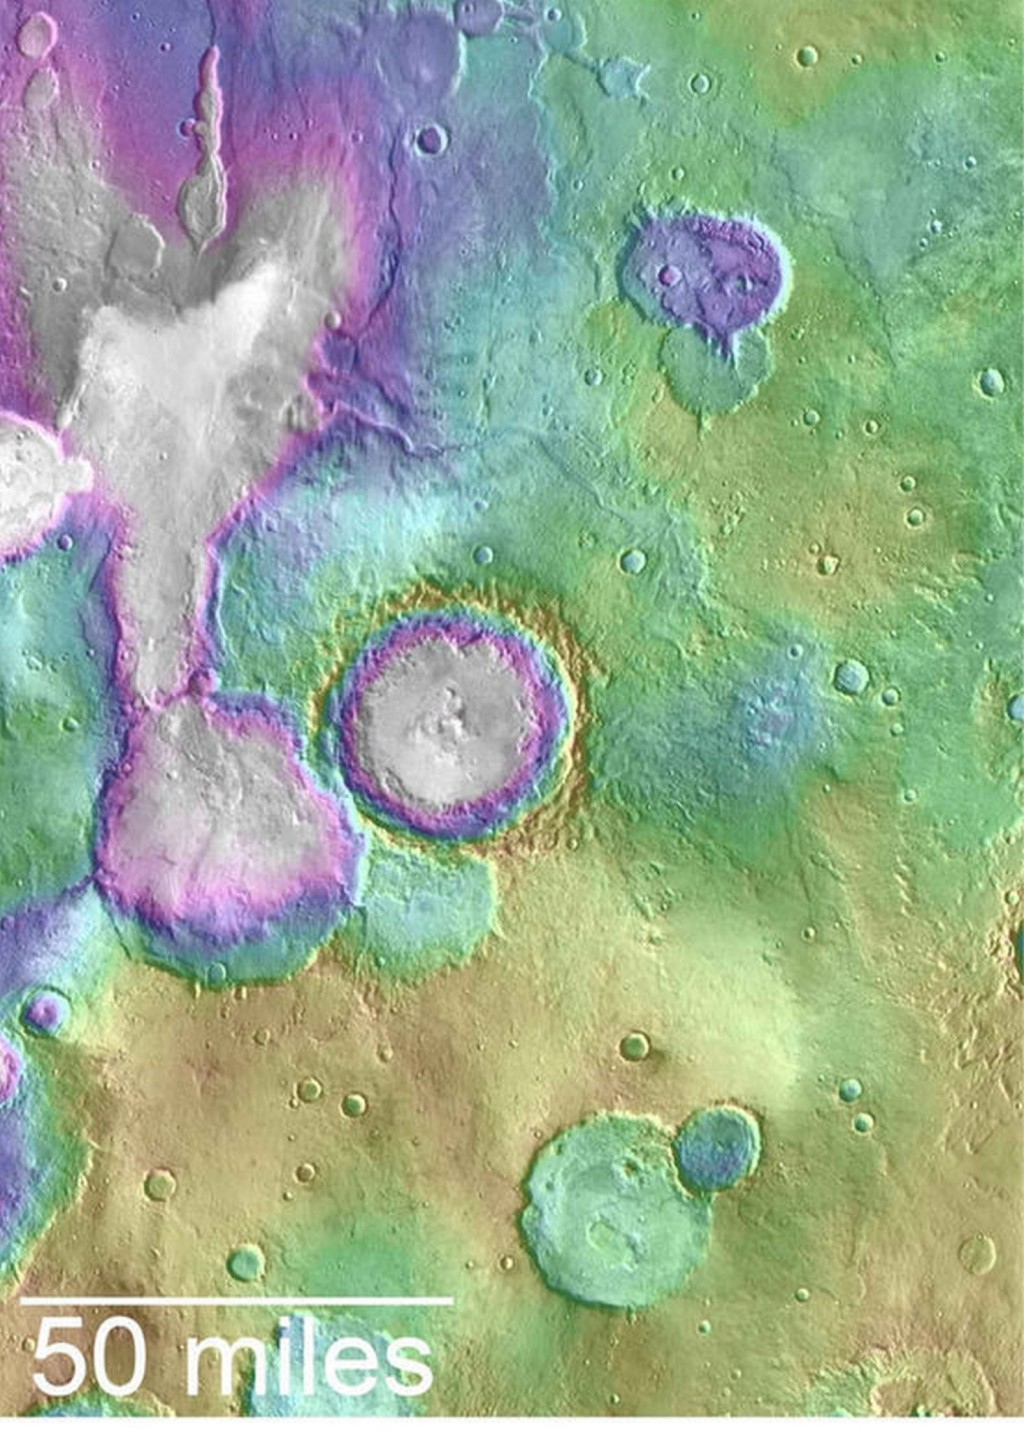 mars valleys age